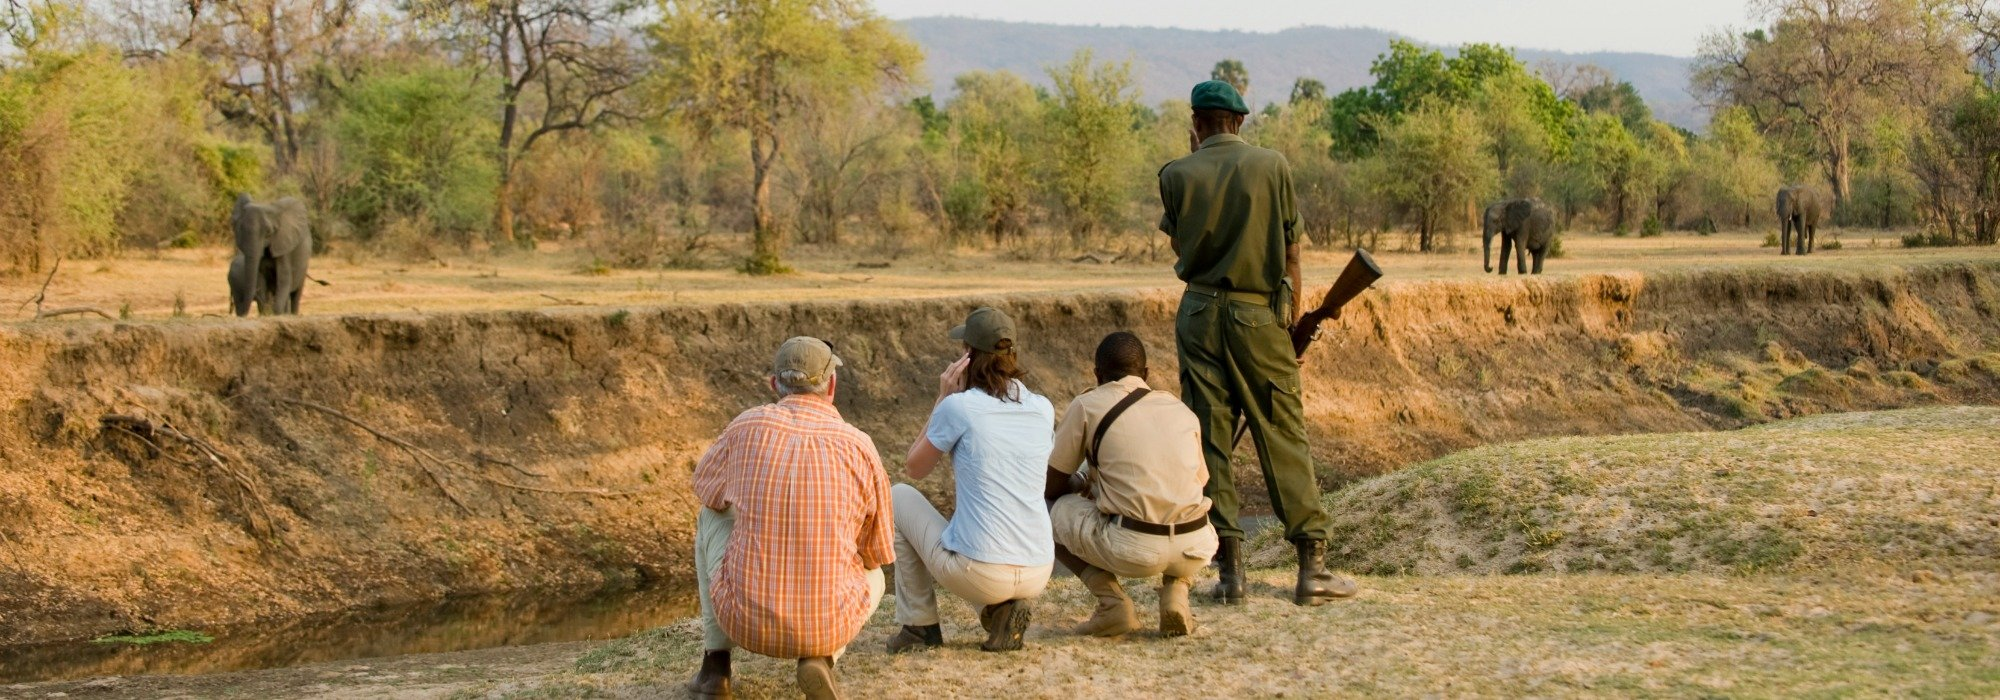 Zambia Walking Safari